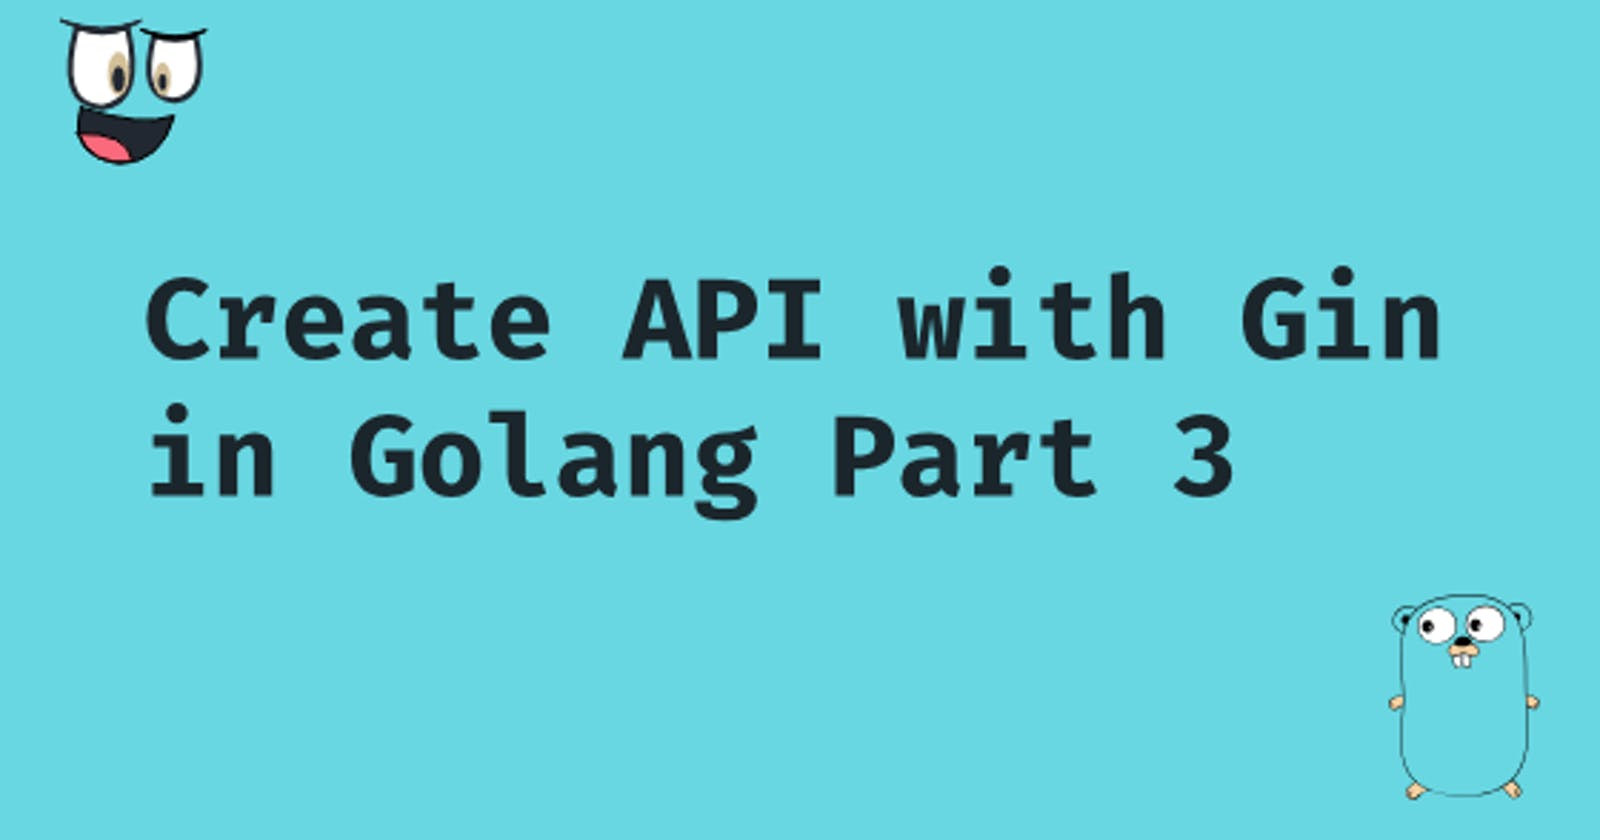 Create API with Gin in Golang Part 3